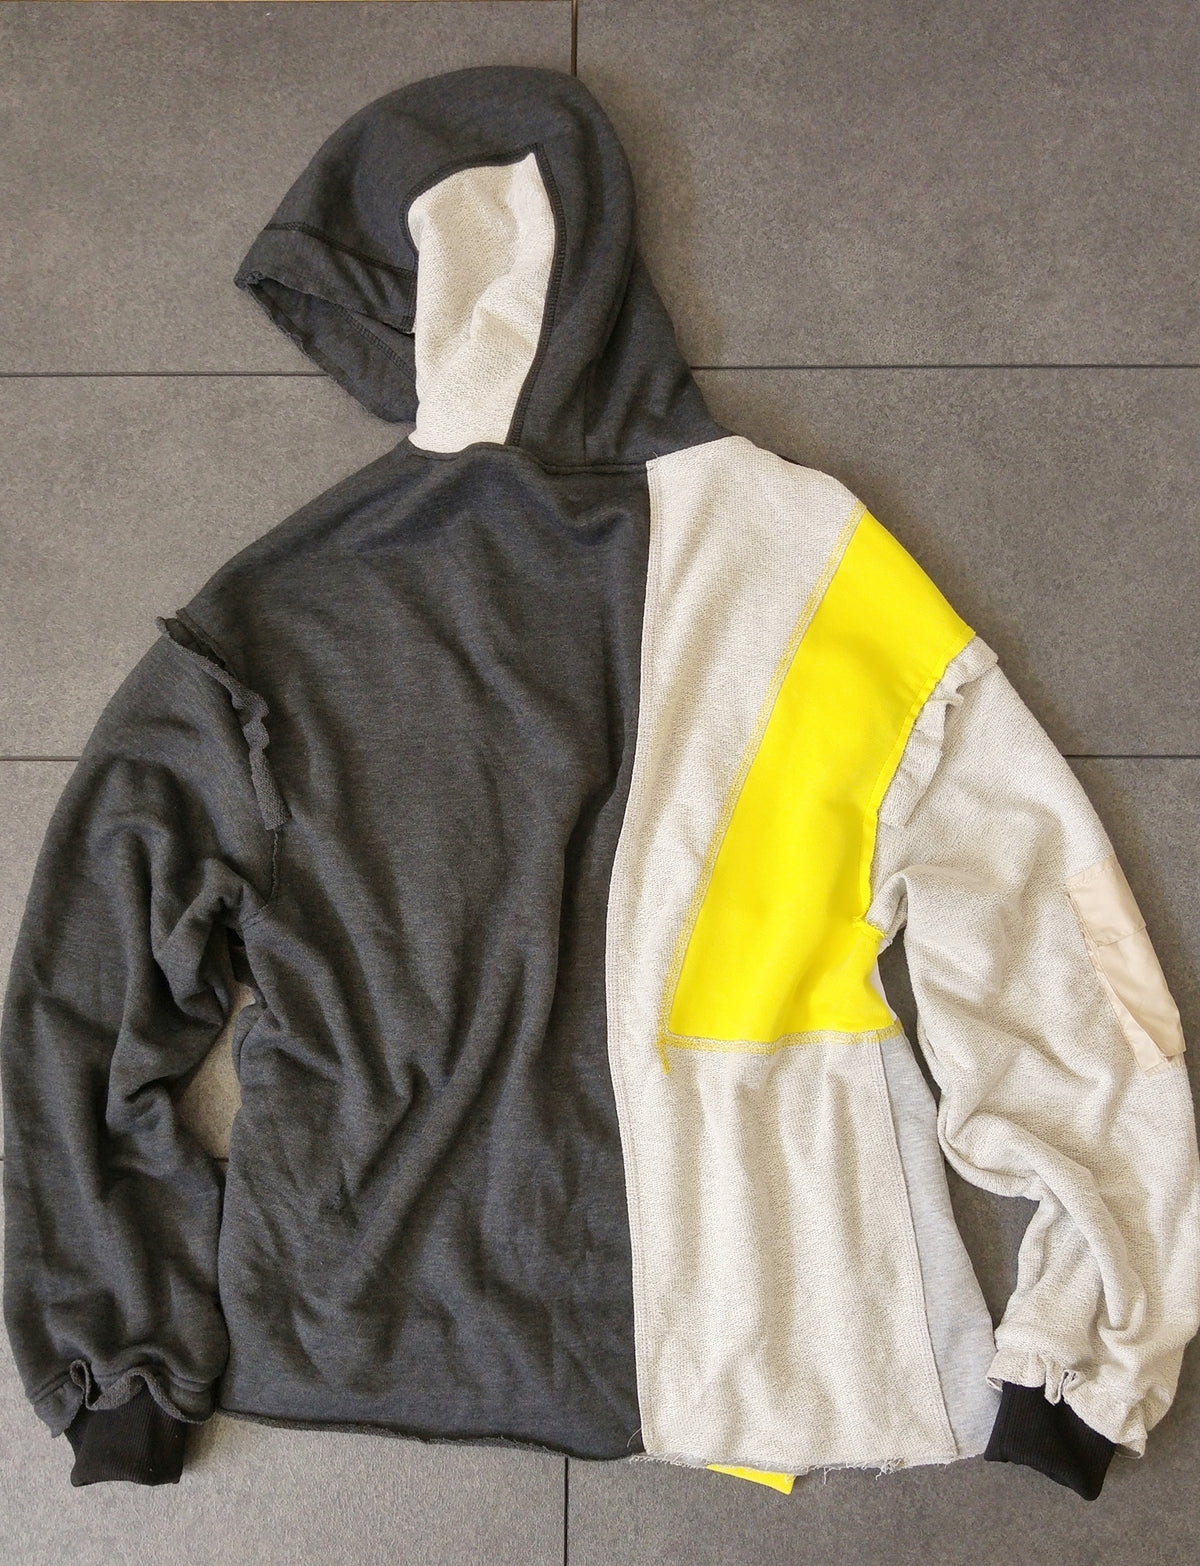 Irregular Cut Long Diagonal Multi Pocket Fleece Hoodie / Streetwear Sweatshirt HipHop Fashion / ACW Inspired Reversed Parts